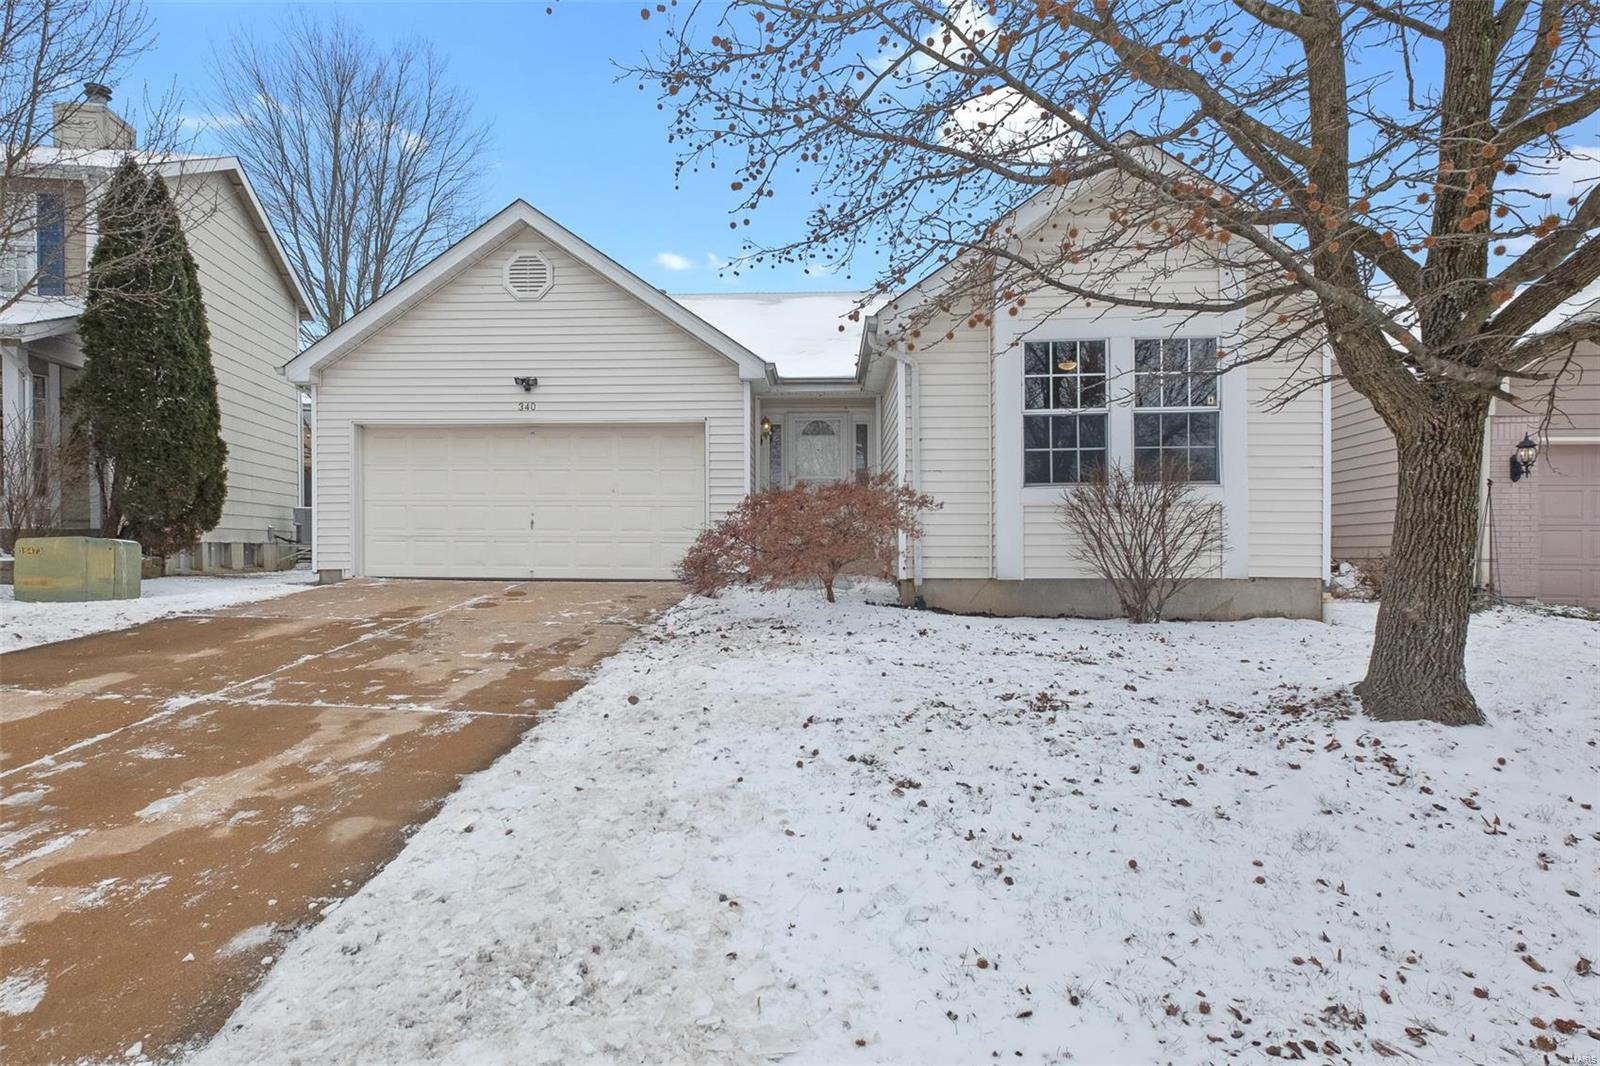 340 Hunters Spur Property Photo - Grover, MO real estate listing